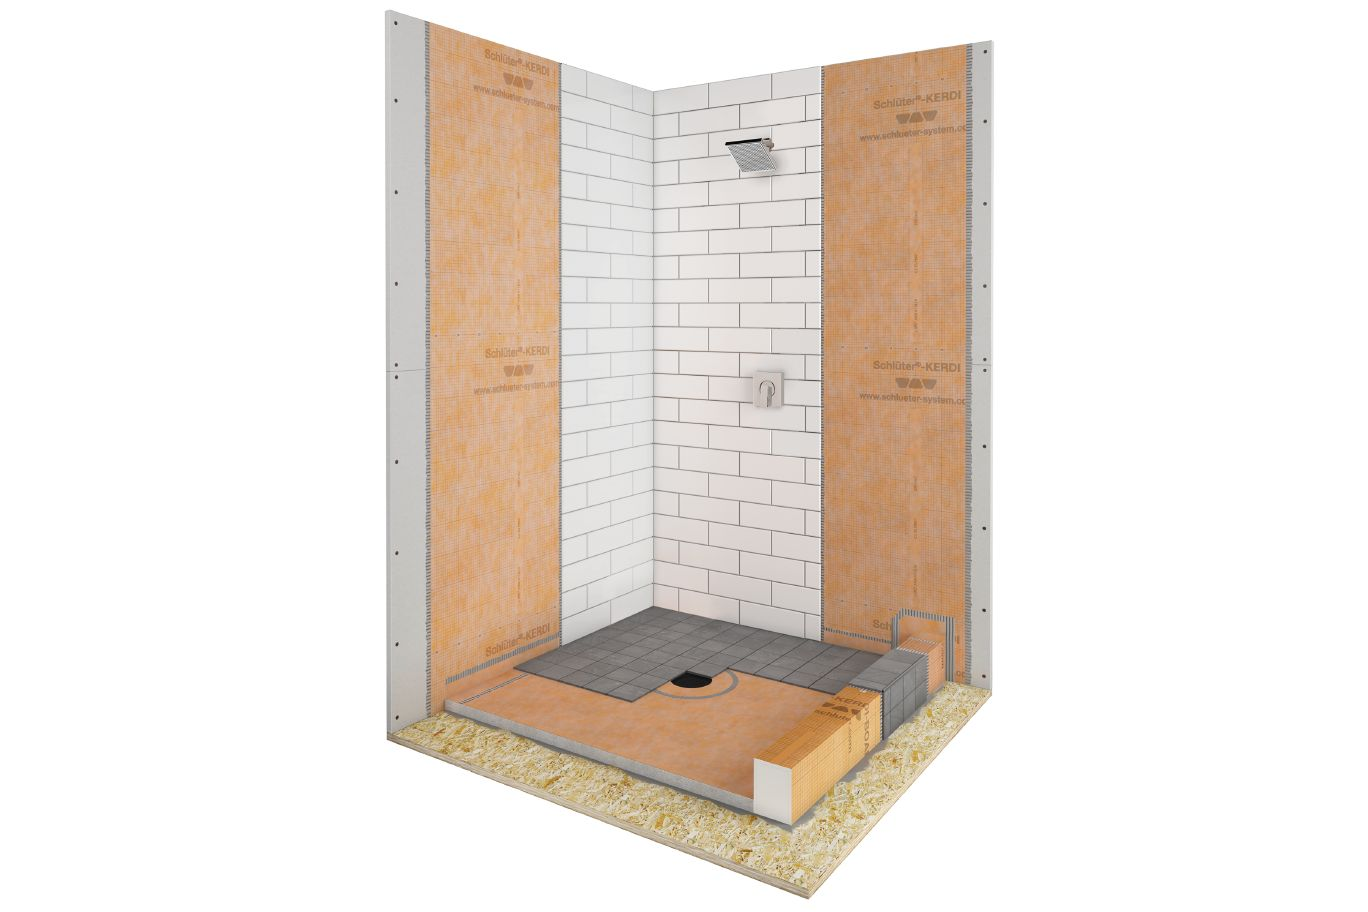 Schluter Kerdi Shower Pan Installation.Schluter Kerdi Shower Kit Shower Tub Kits Shower